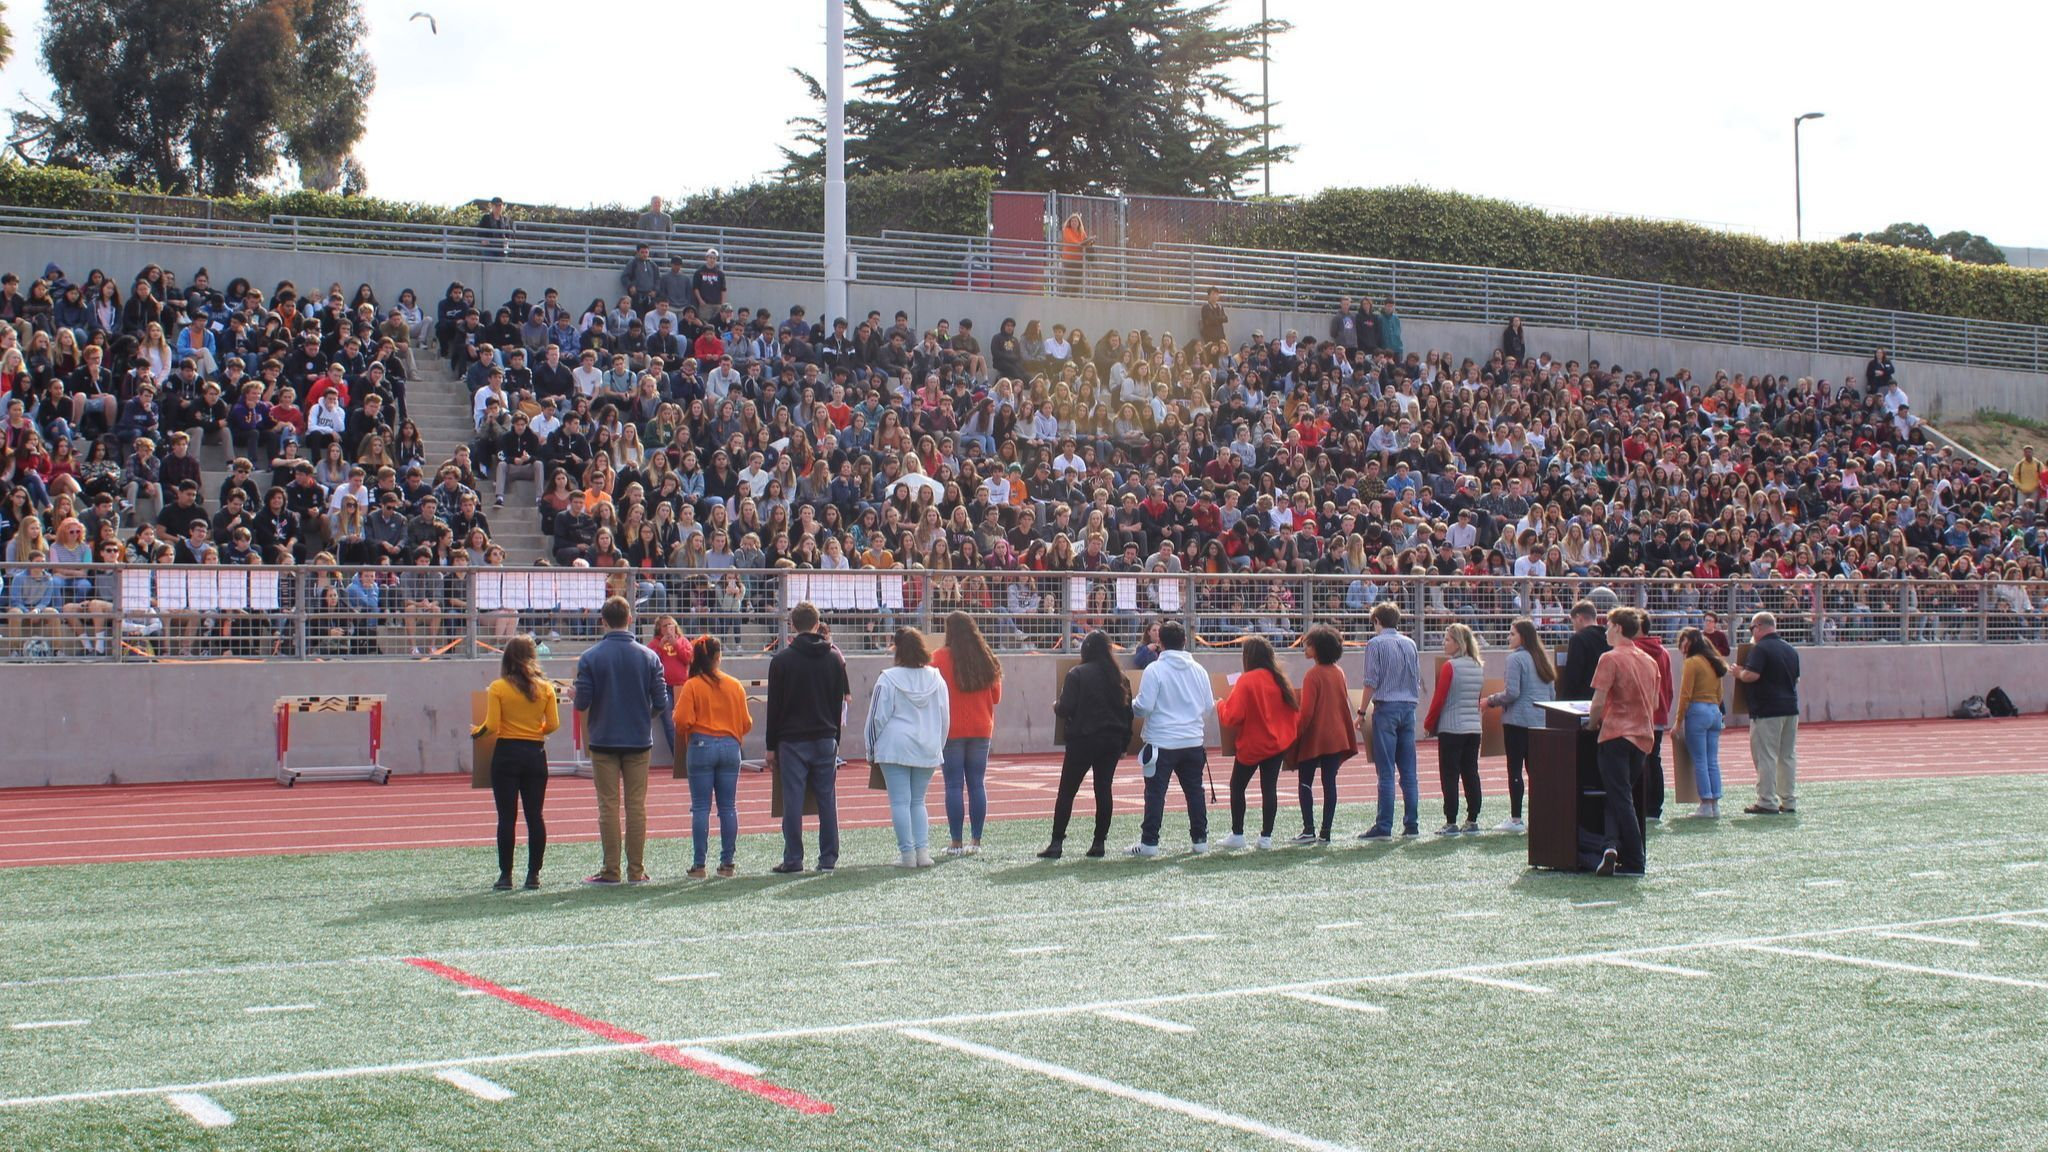 About a thousand LJHS students packed the football stands for the event.